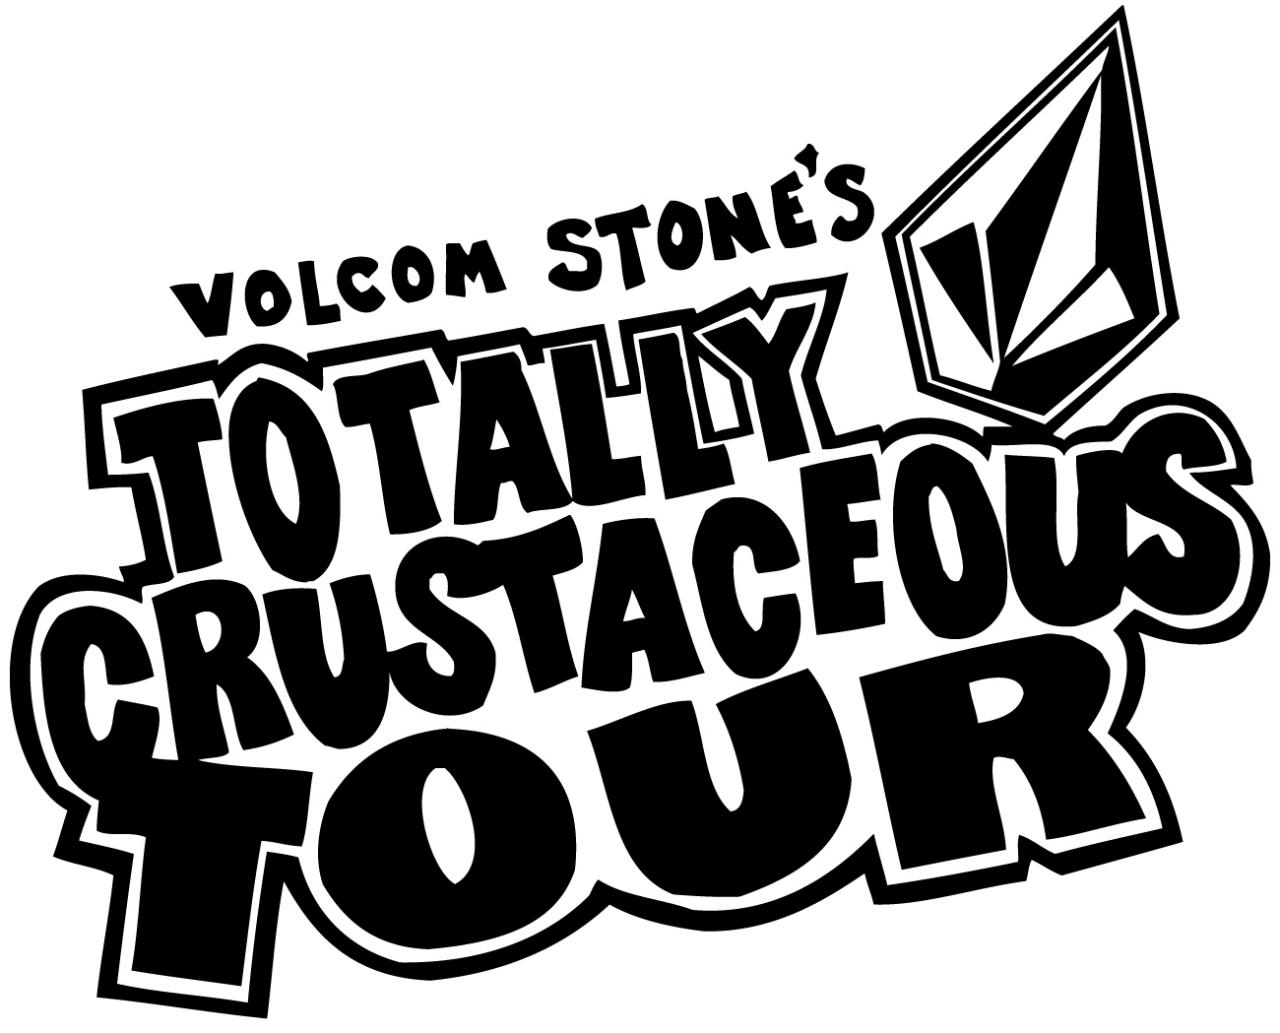 Volcom Stone's Totally Crustaceous Tour, Team Associated Set as Sponsor